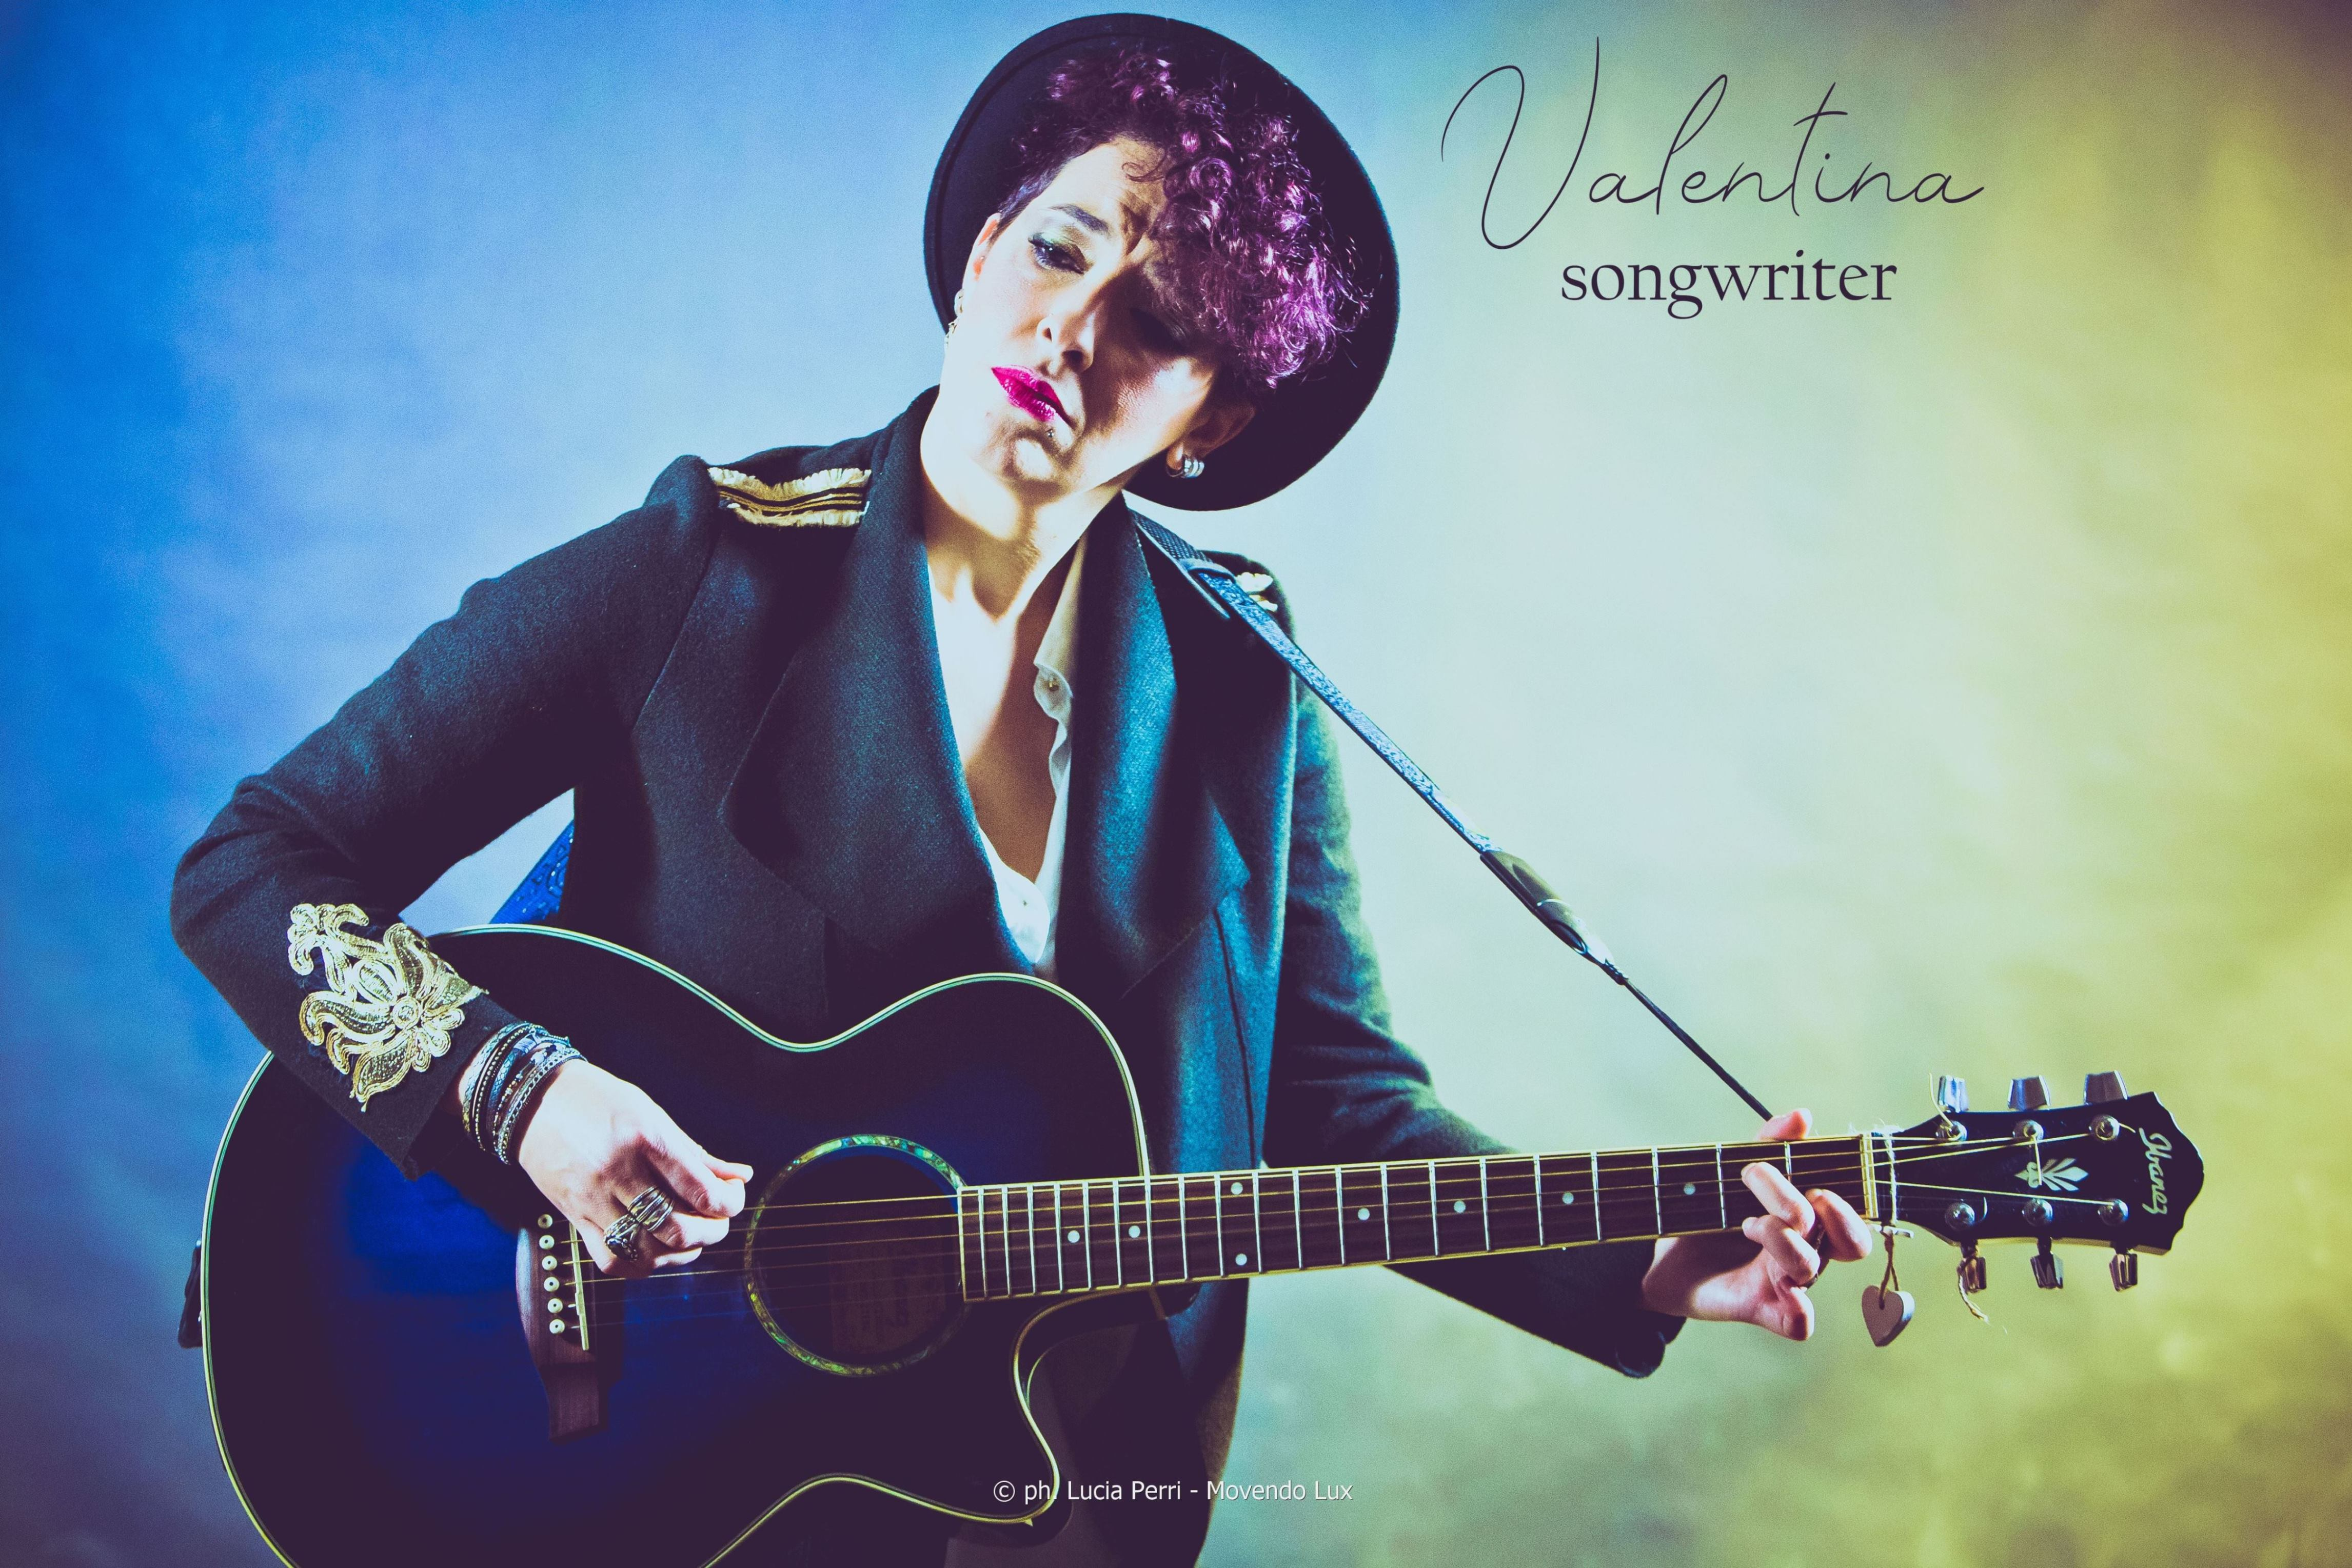 valentina-songwriter-9